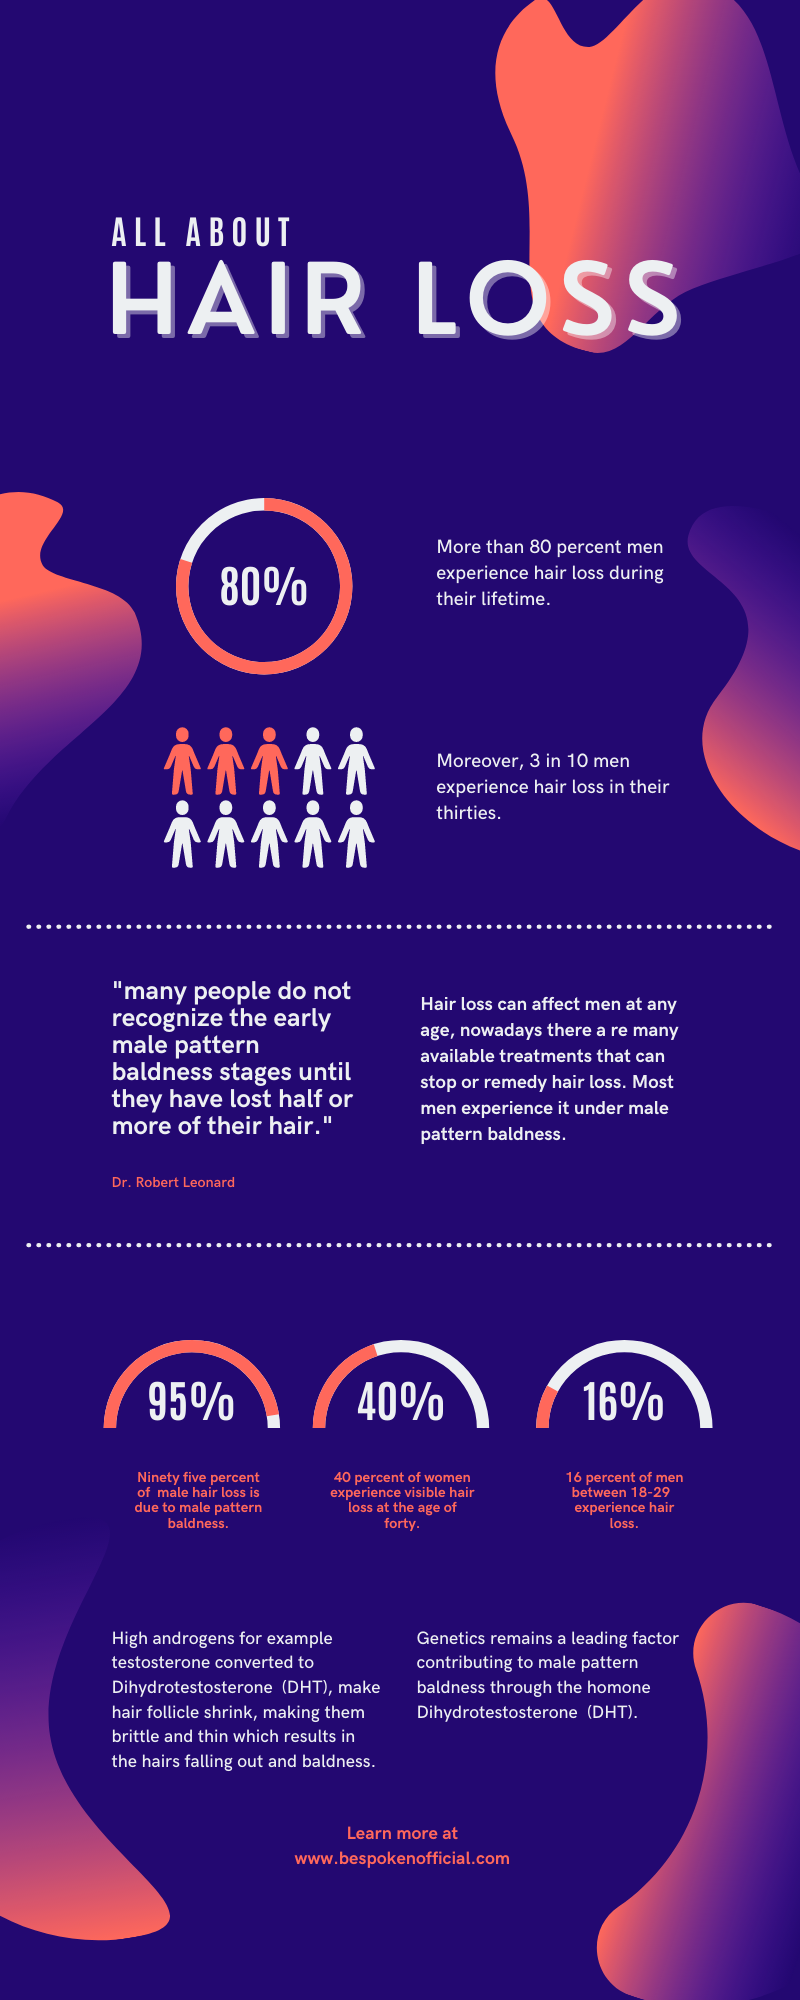 Daniel Tosh hair loss related infographic